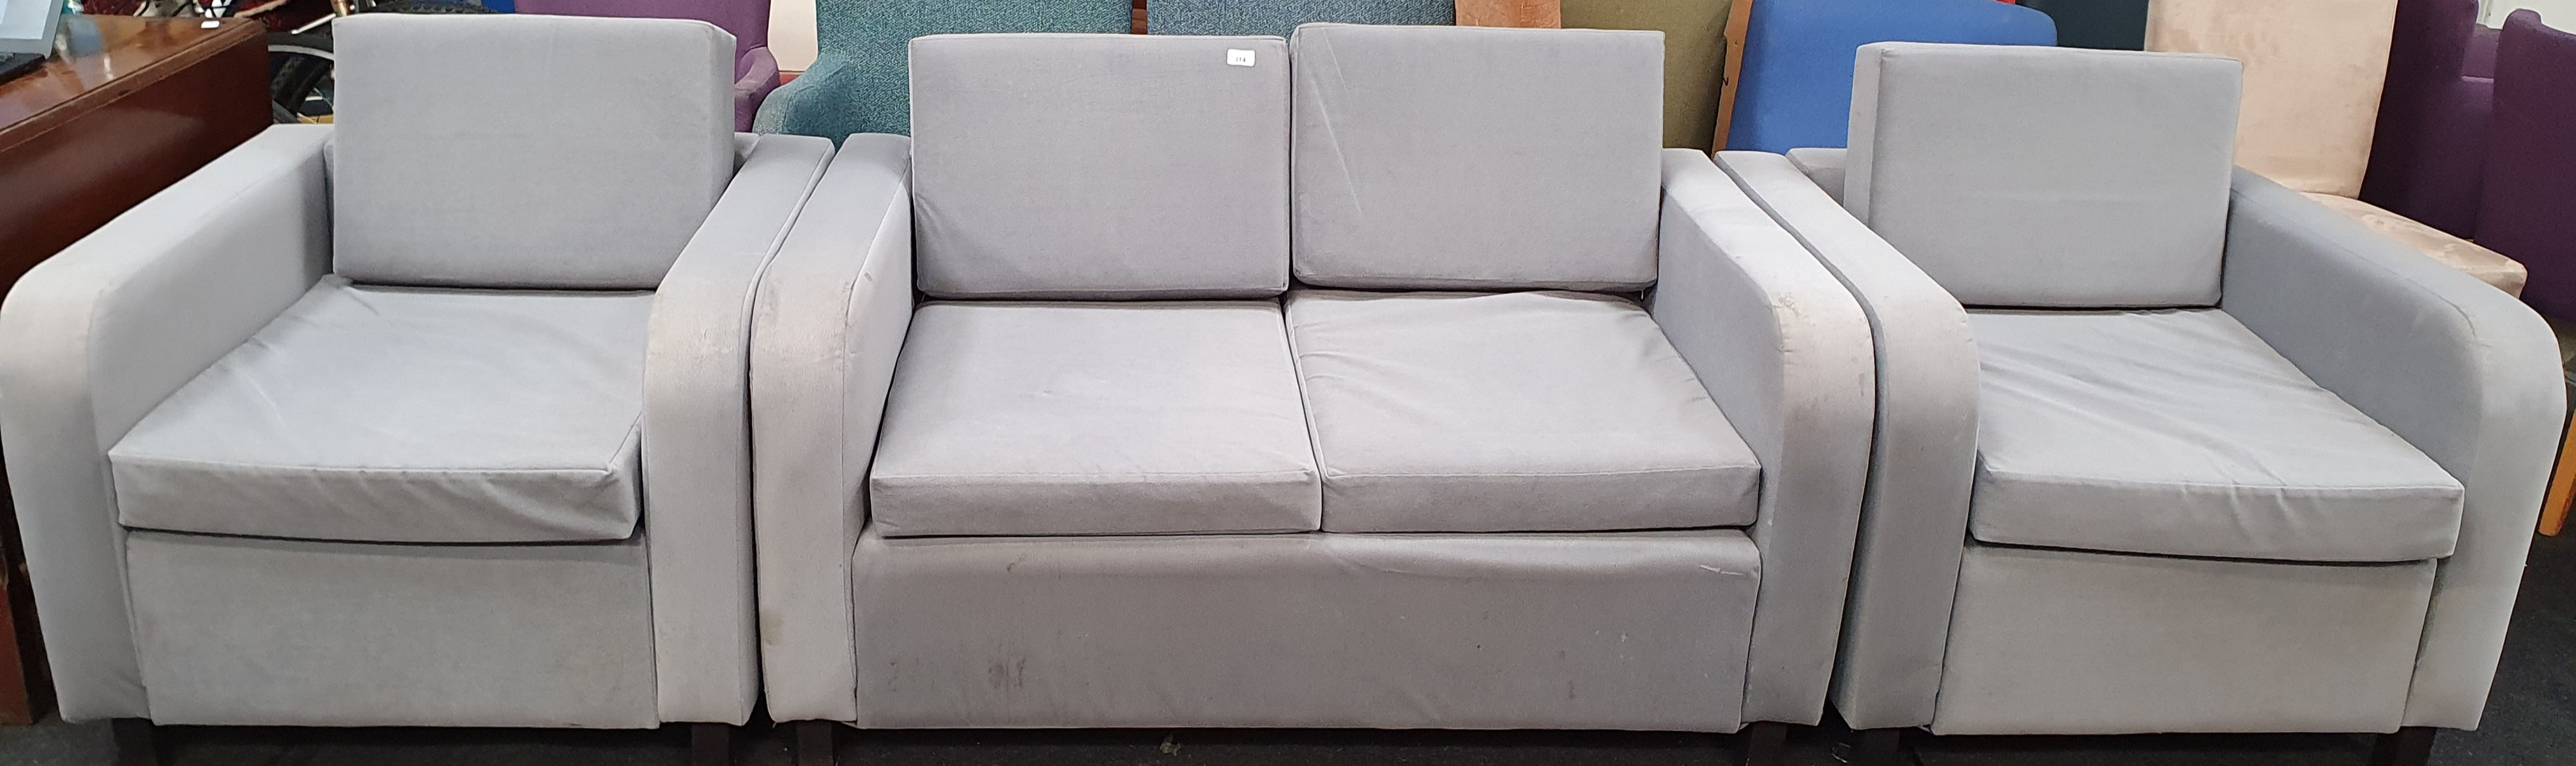 From a hotel clearance: Two armchairs and a two seater sofa in grey.